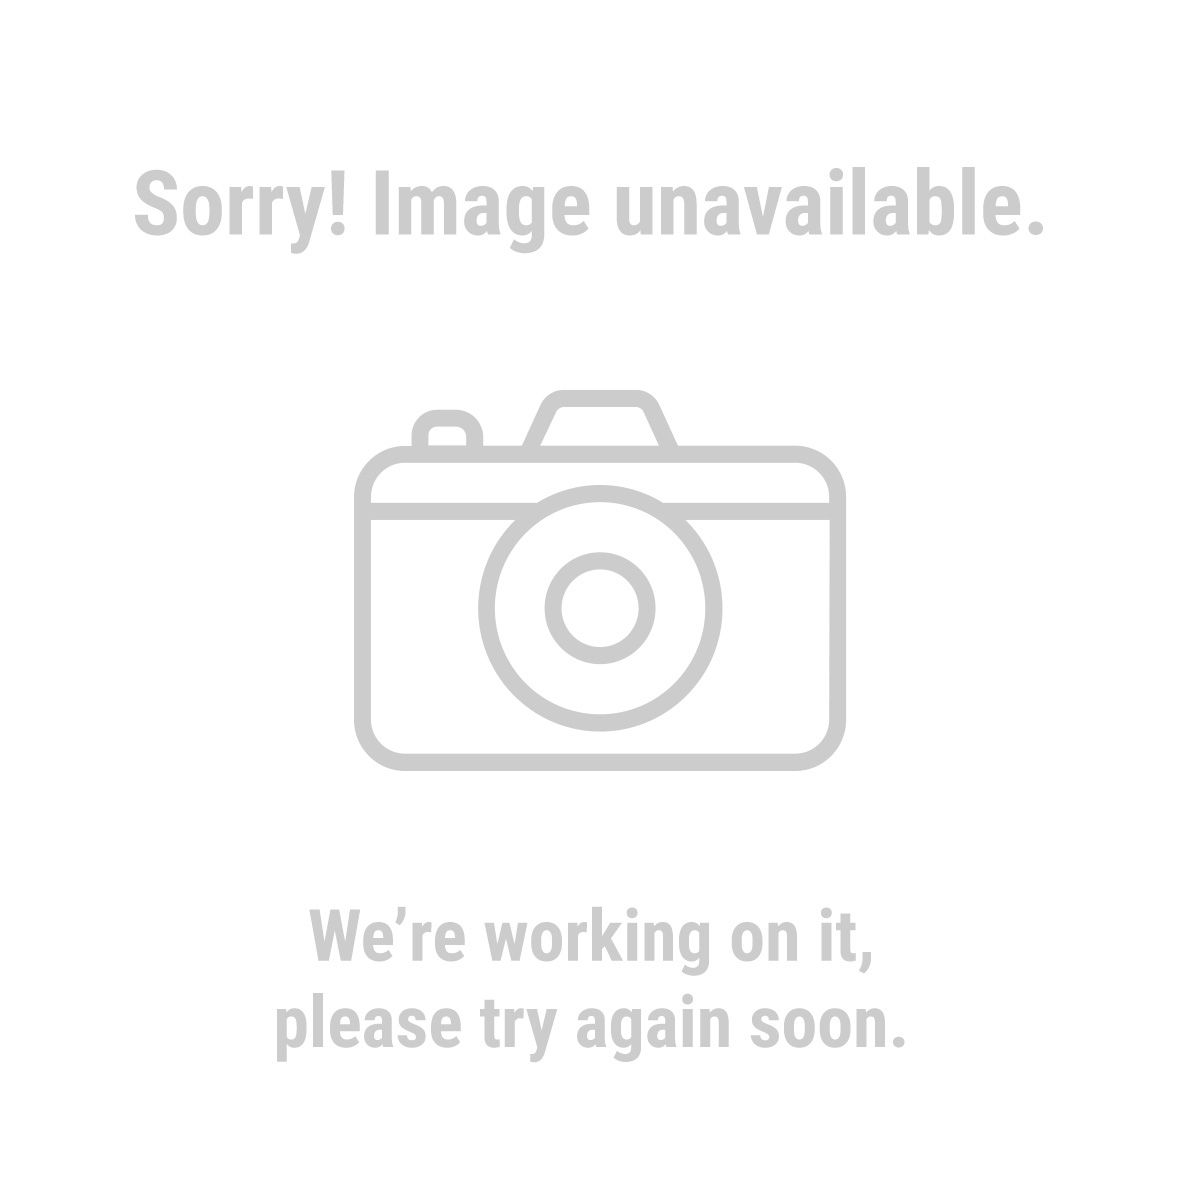 Cen-Tech 98025 7 Function Digital Multimeter